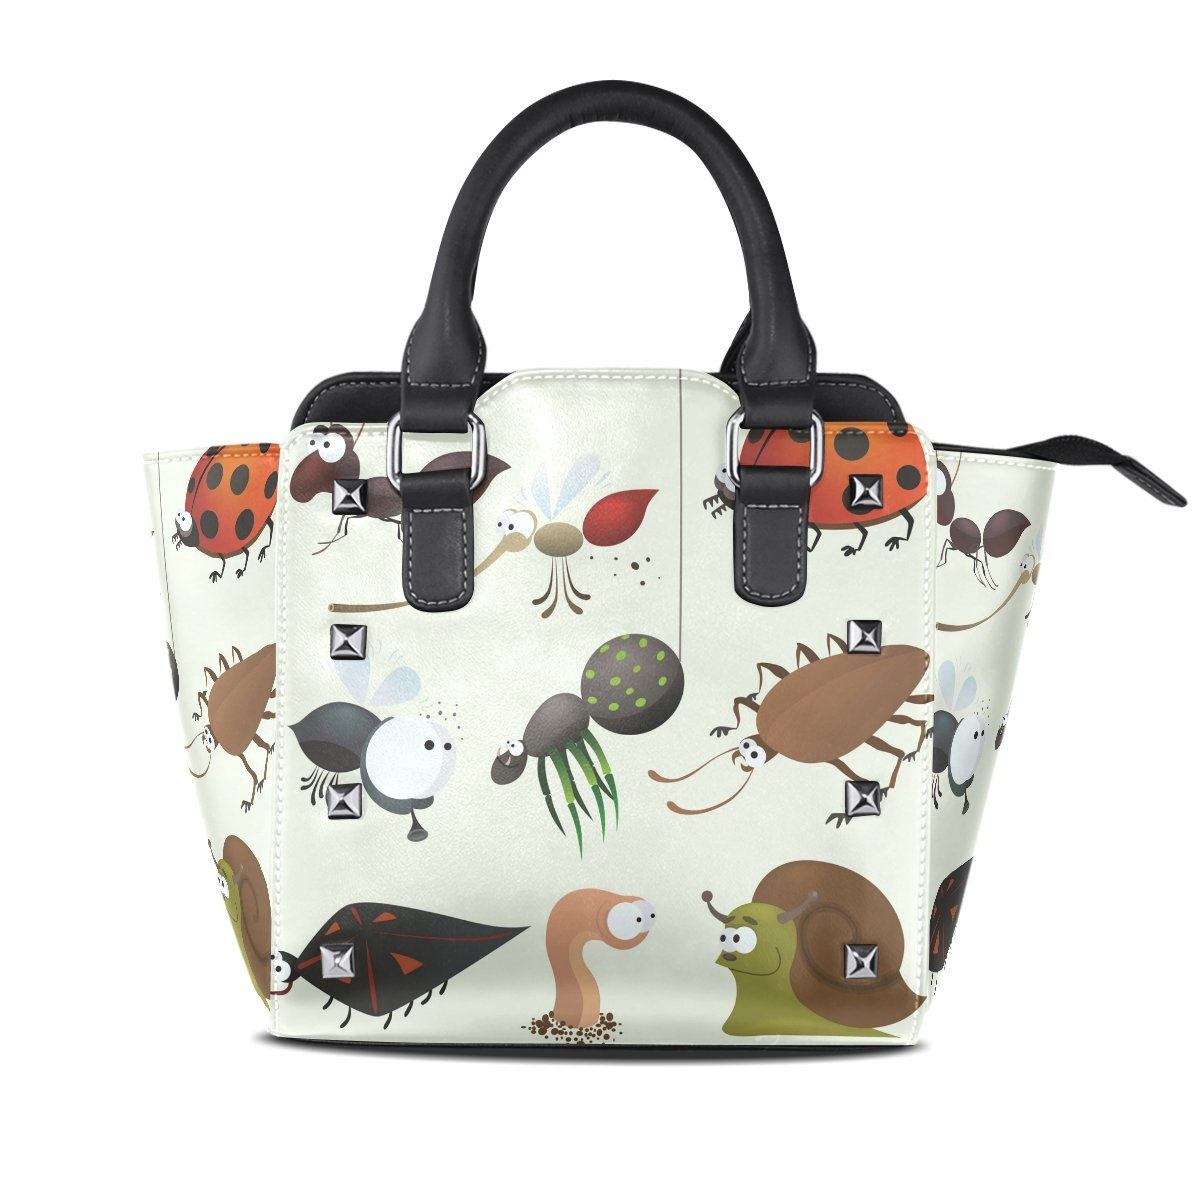 Womens Genuine Leather Hangbags Tote Bags Insects Purse Shoulder Bags